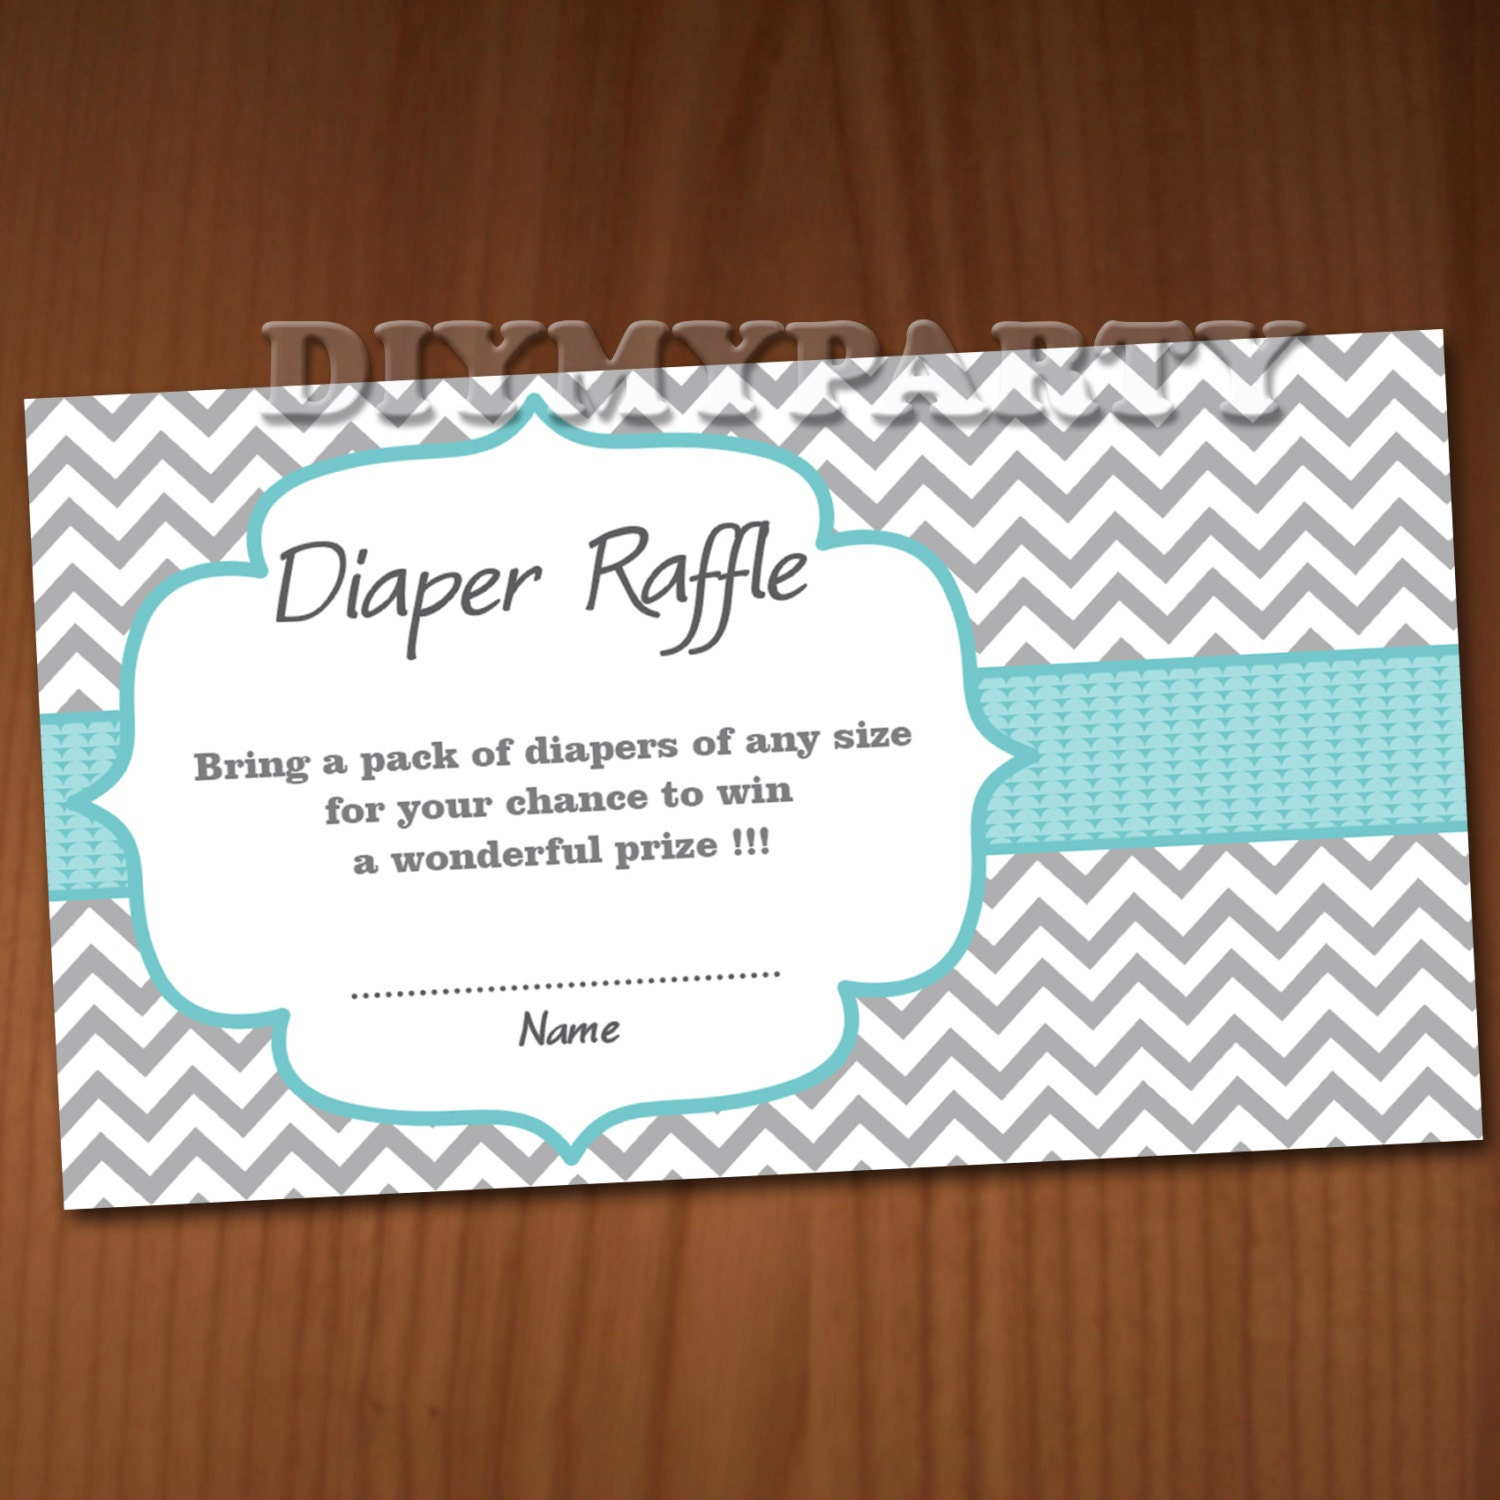 il_fullxfull.627687013_60zn baby shower diaper raffle ticket diaper wipe raffle card,How To Word A Diaper Raffle On The Invitation